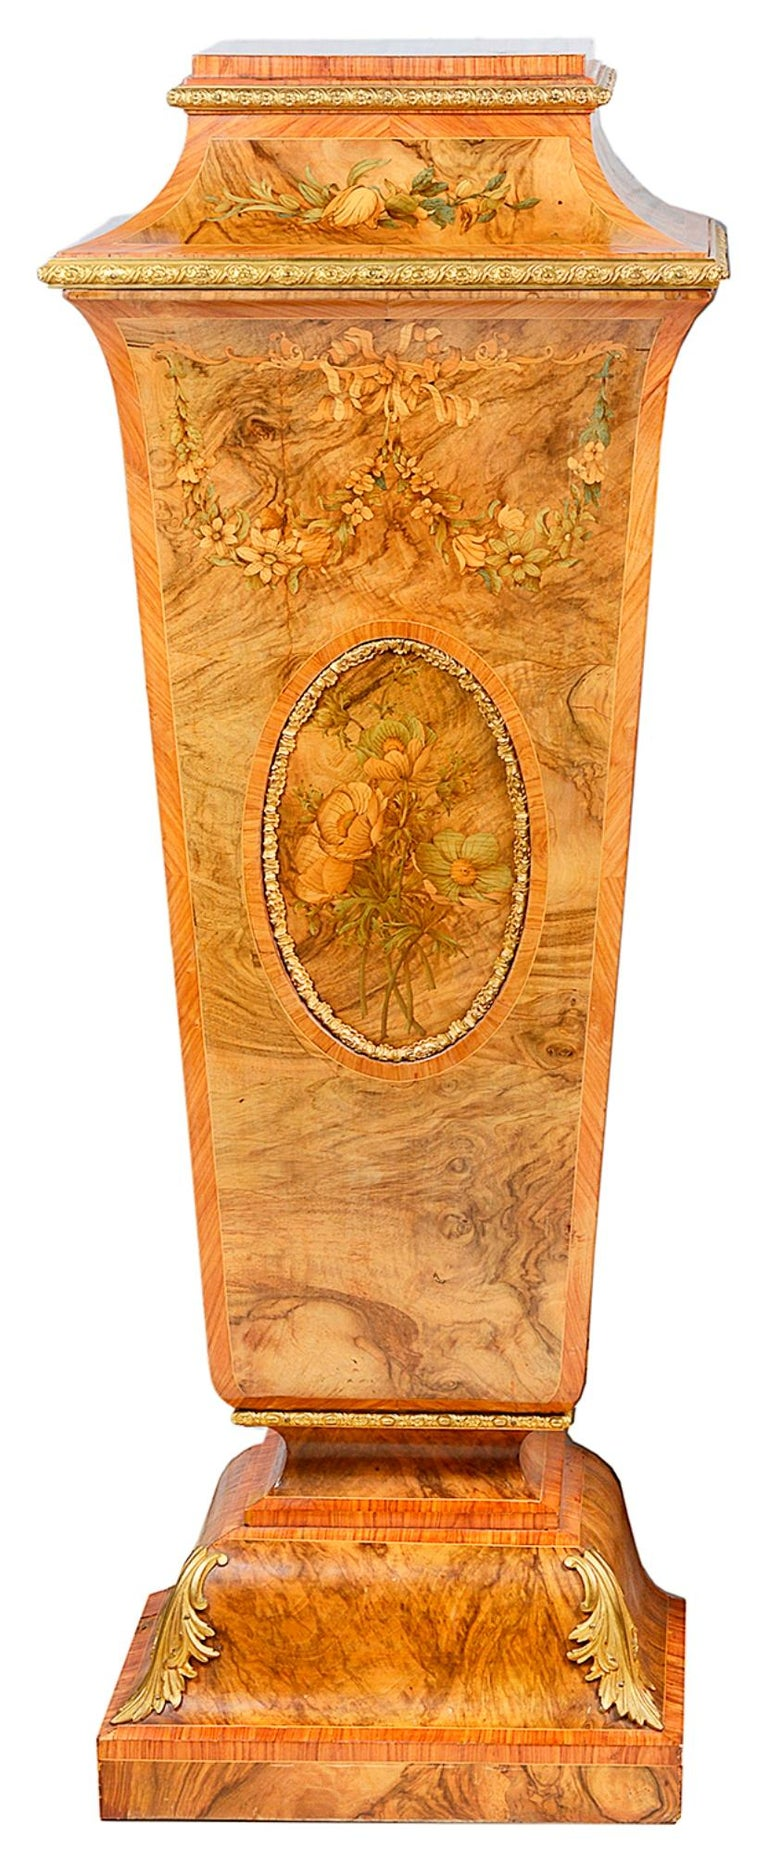 A very good quality pair of 19th century walnut pedestals, each with gilded ormolu mouldings, marquetry inlaid decoration of flowers and foliage, both having oval recessed panels again with beautiful marquetry decoration. A door to each opening to